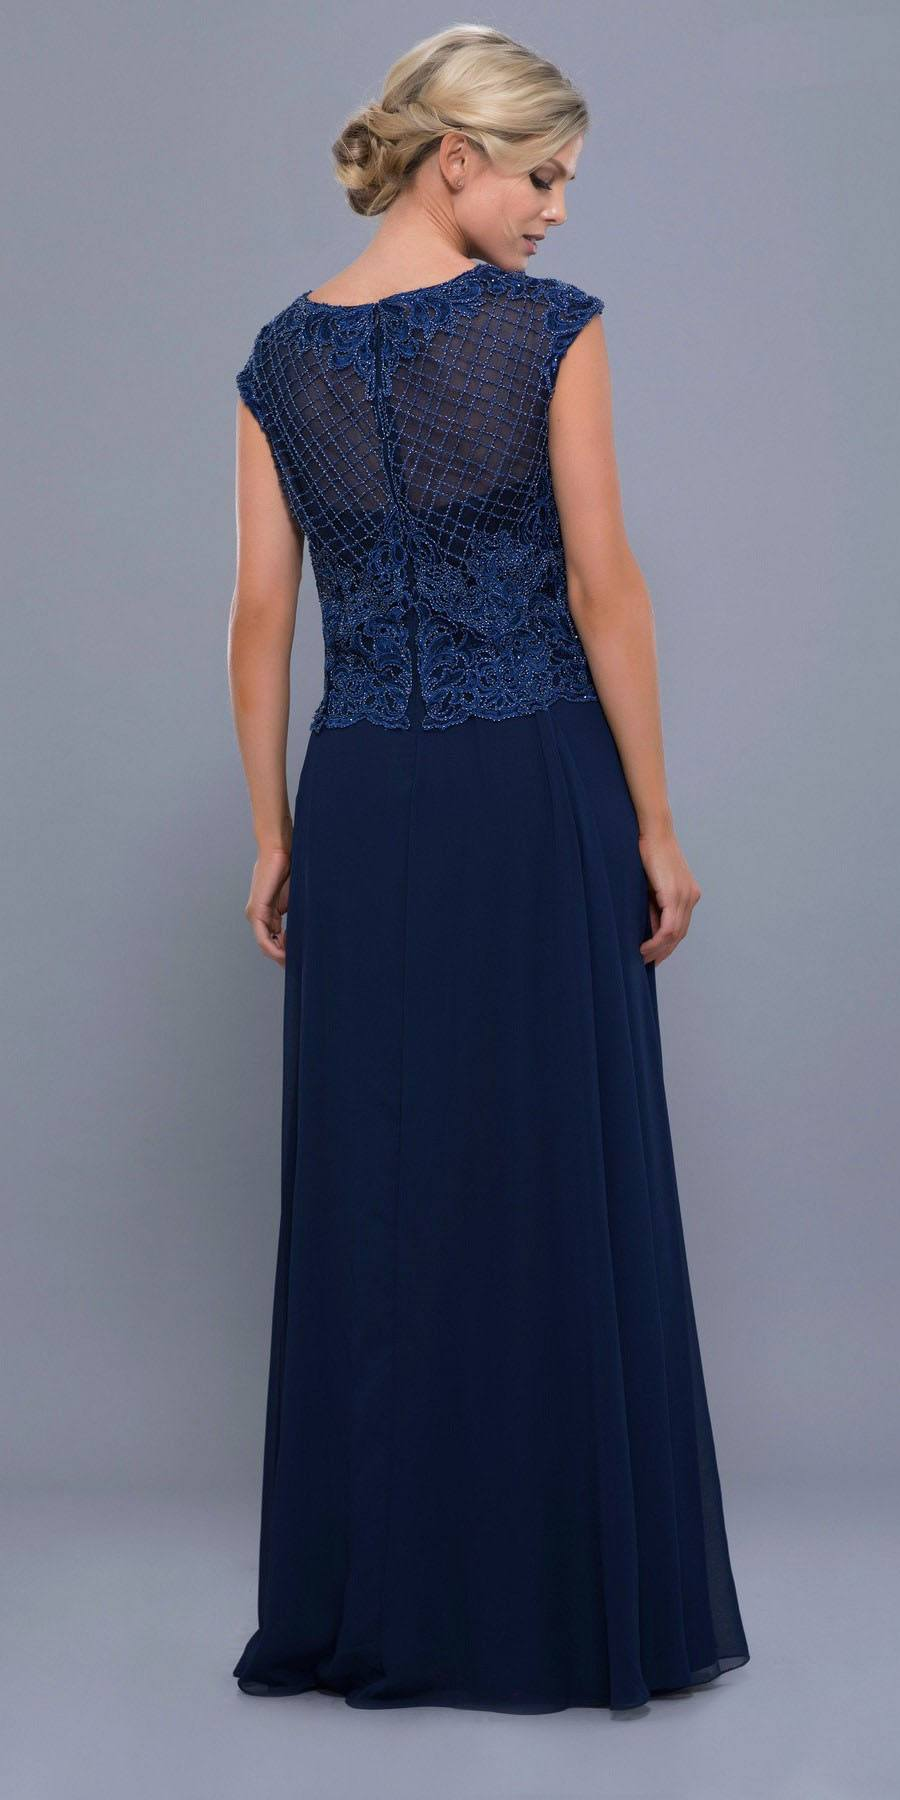 Cap Sleeves Embellished Bodice A-Line Formal Dress Navy Blue with Jacket